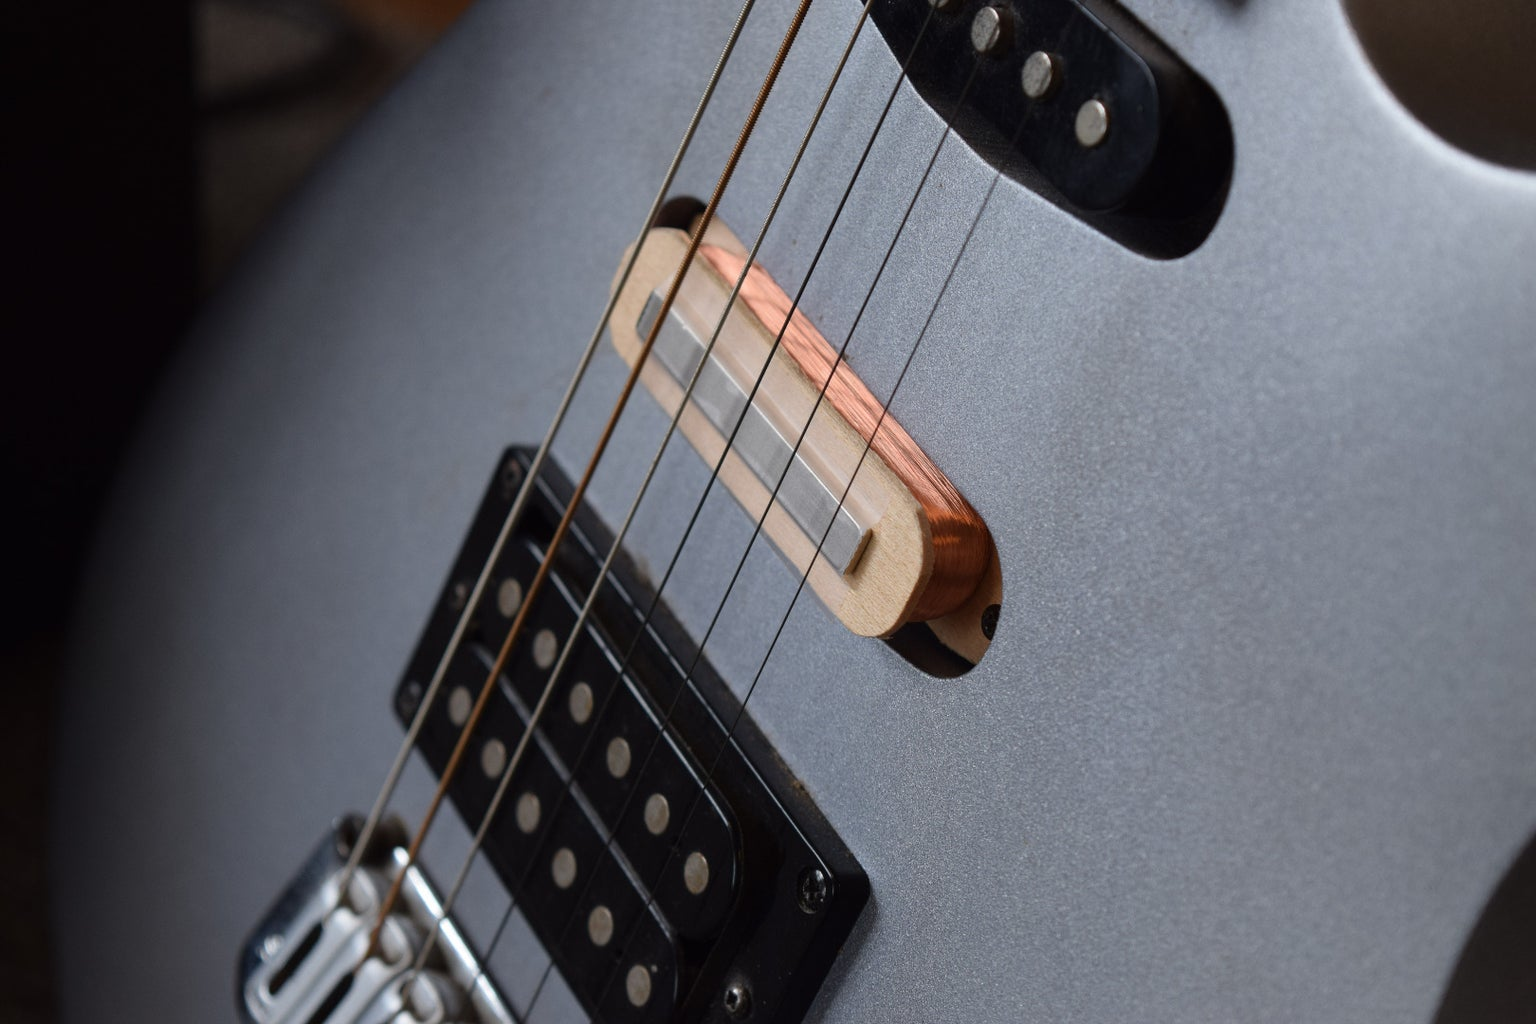 Restring the Guitar and Test!